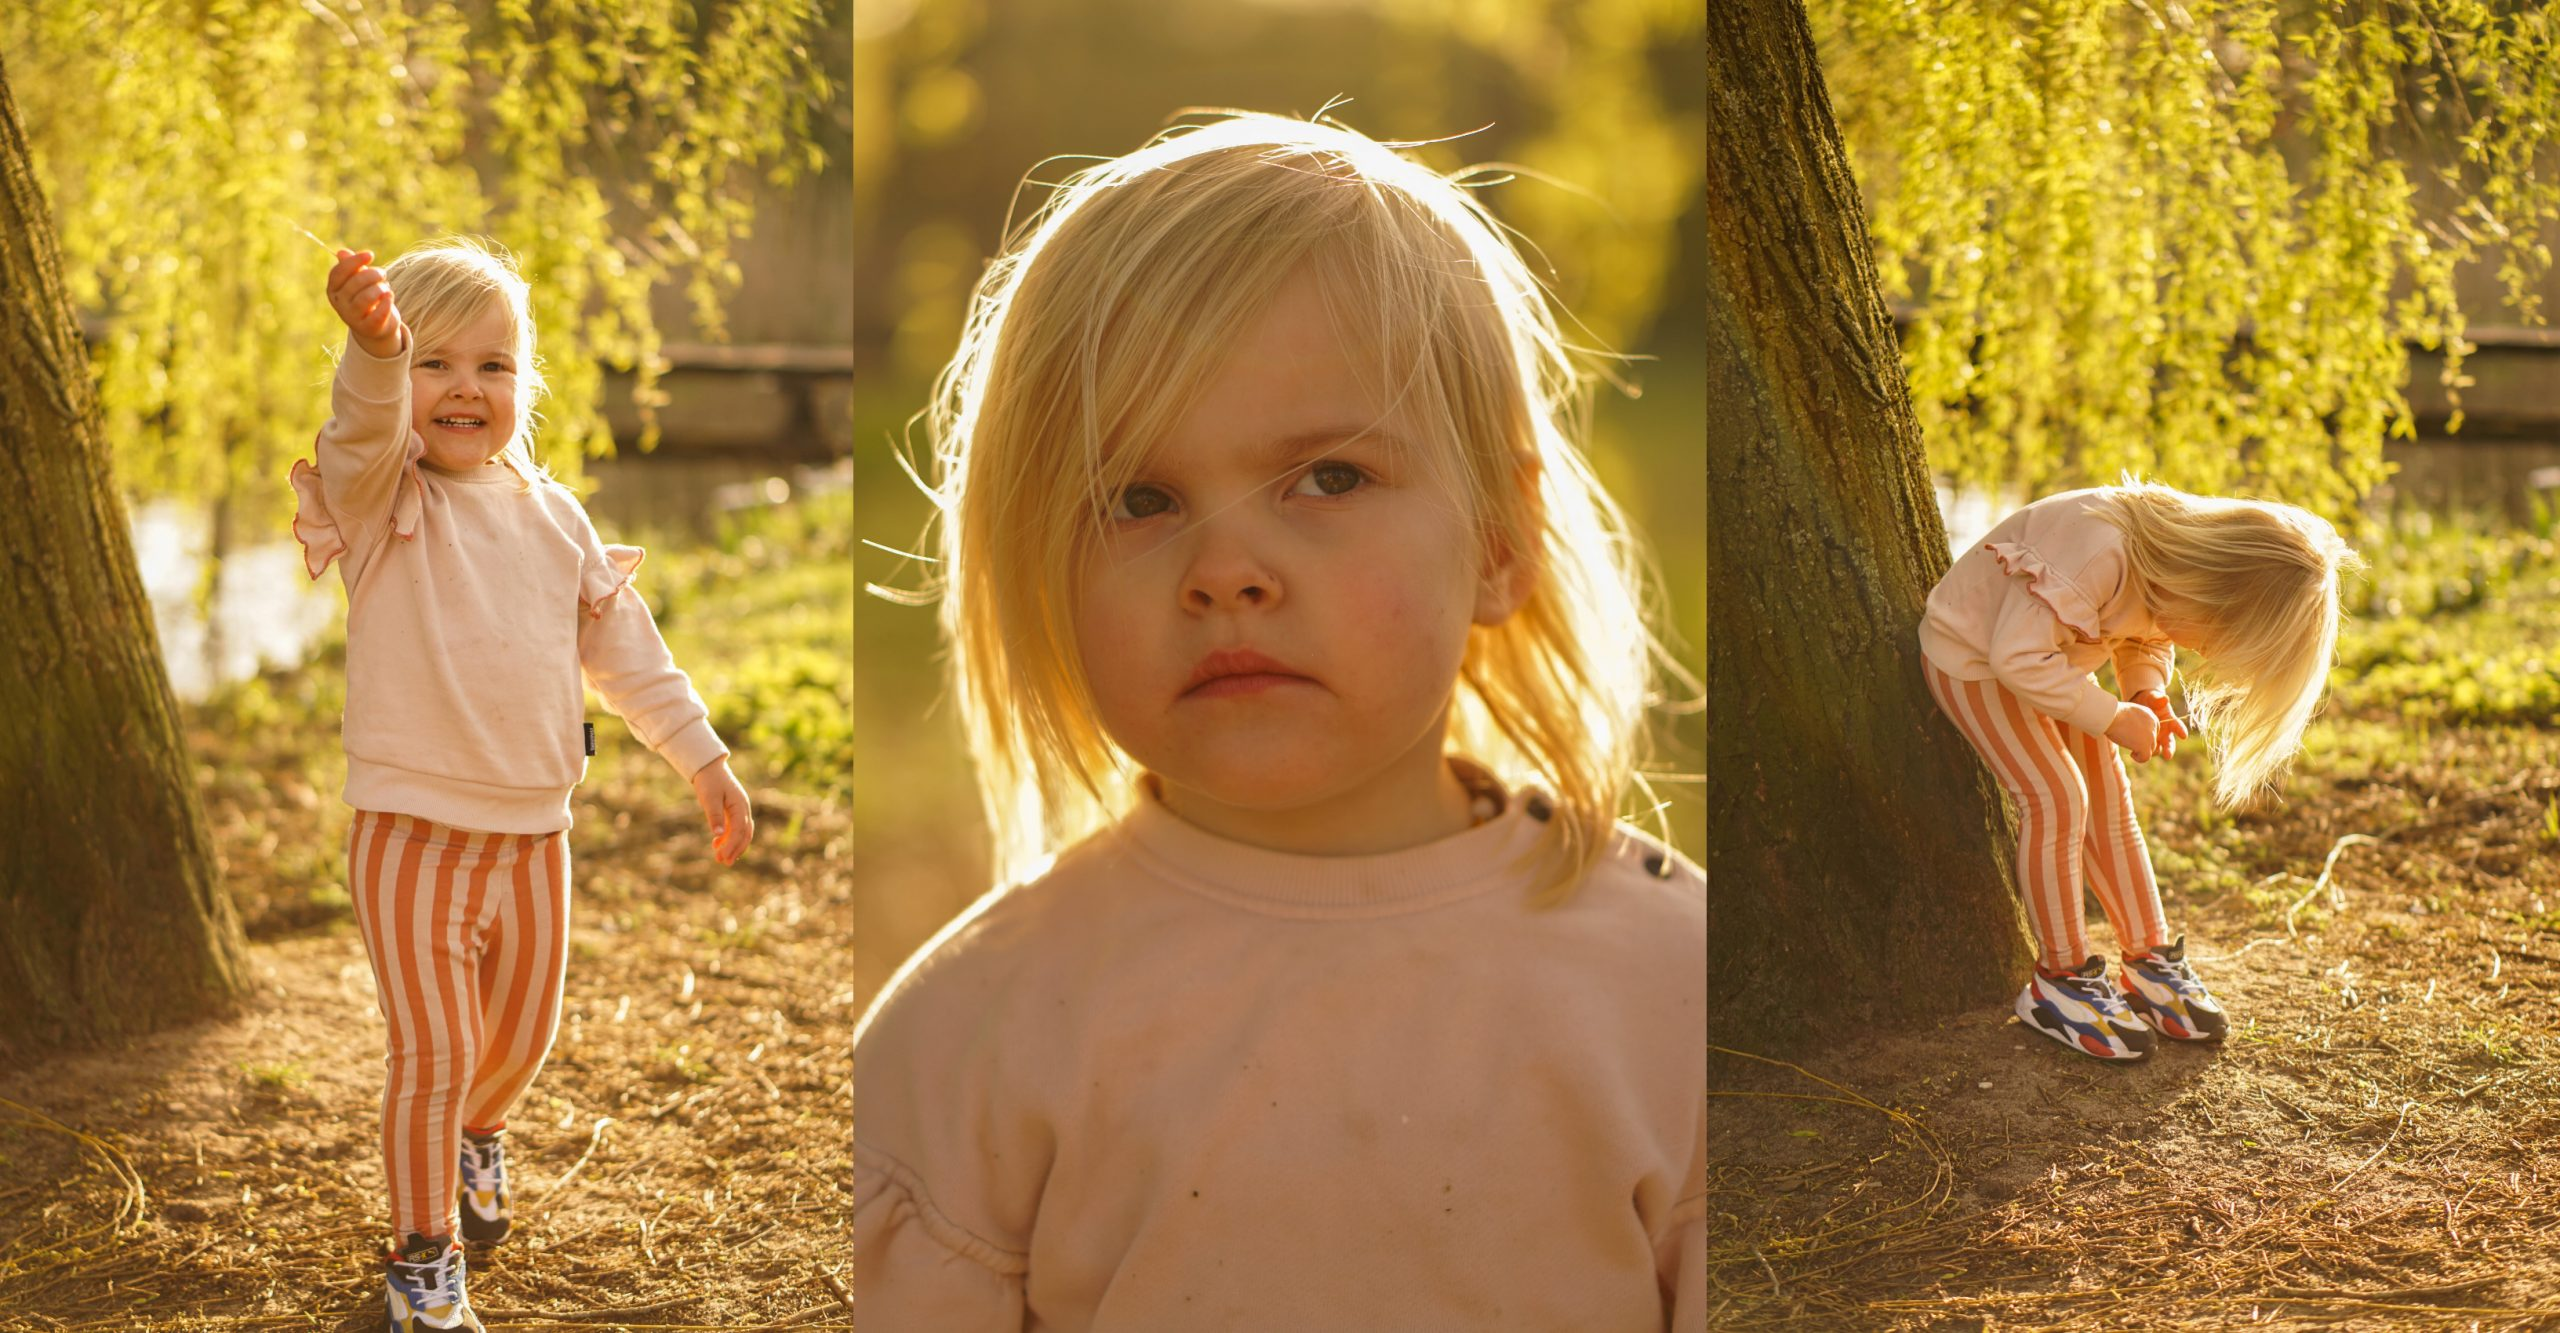 golden hour fotografie familie